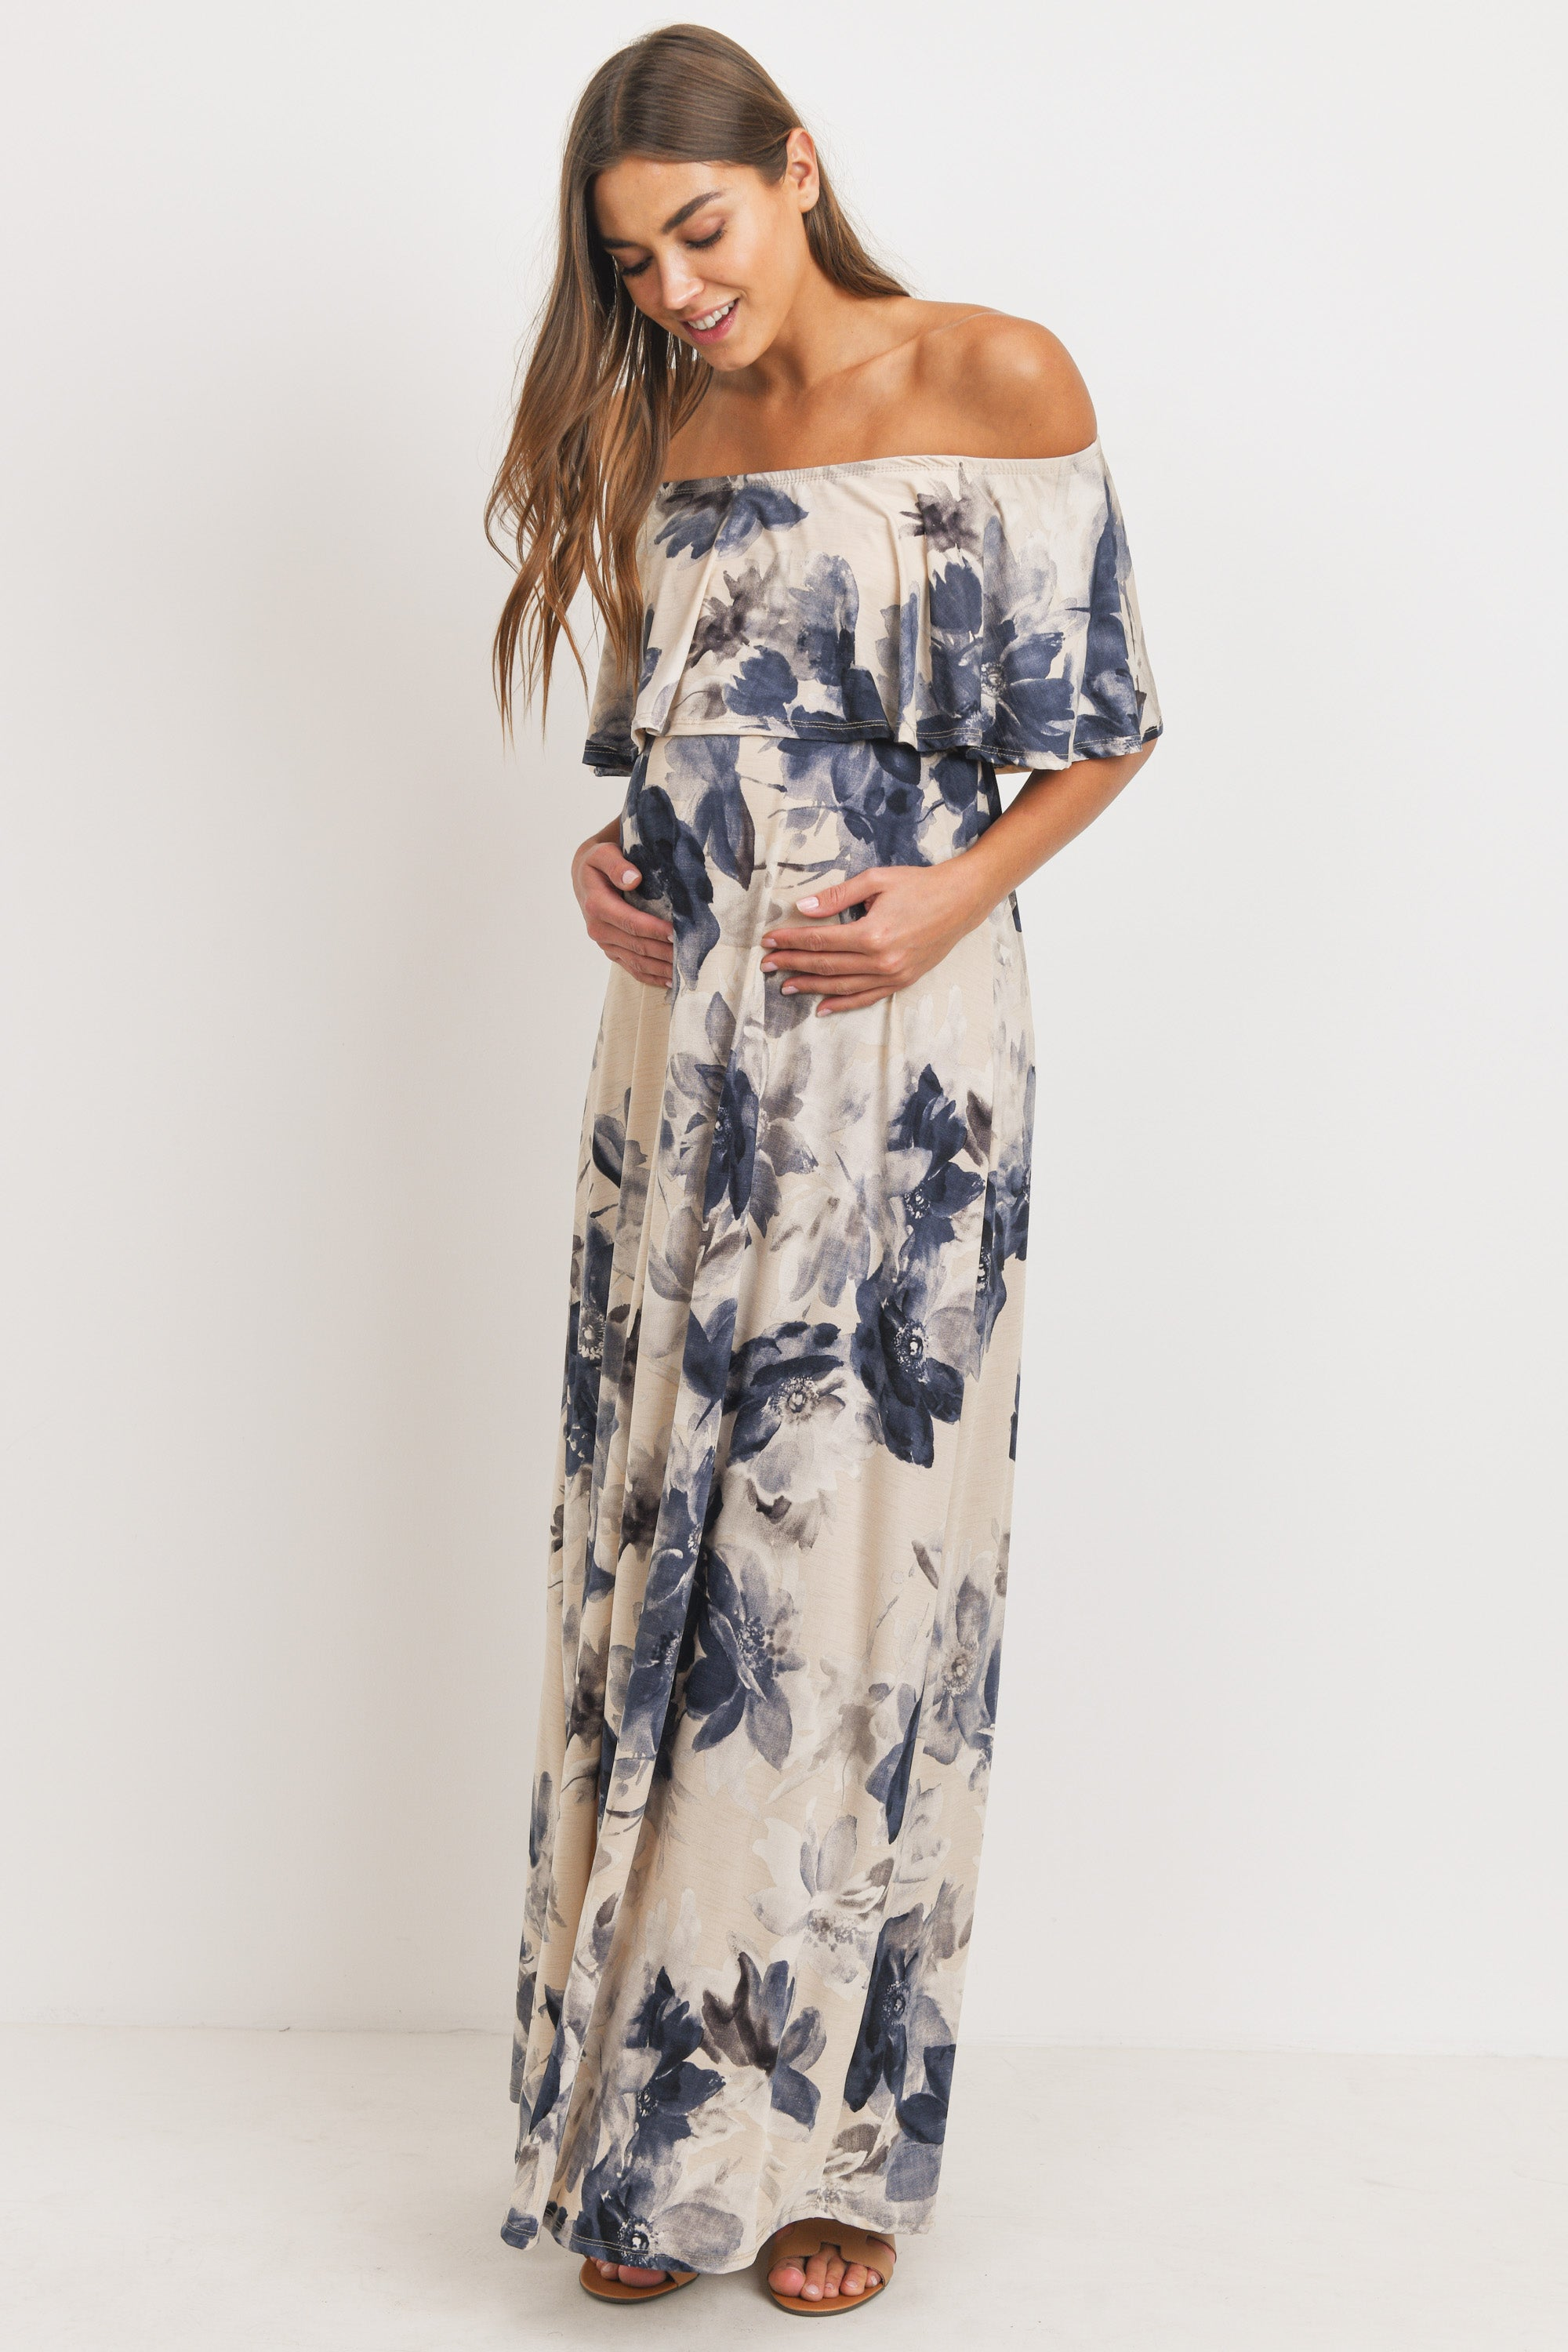 Ruffle Off The Shoulder Maxi Maternity Dress